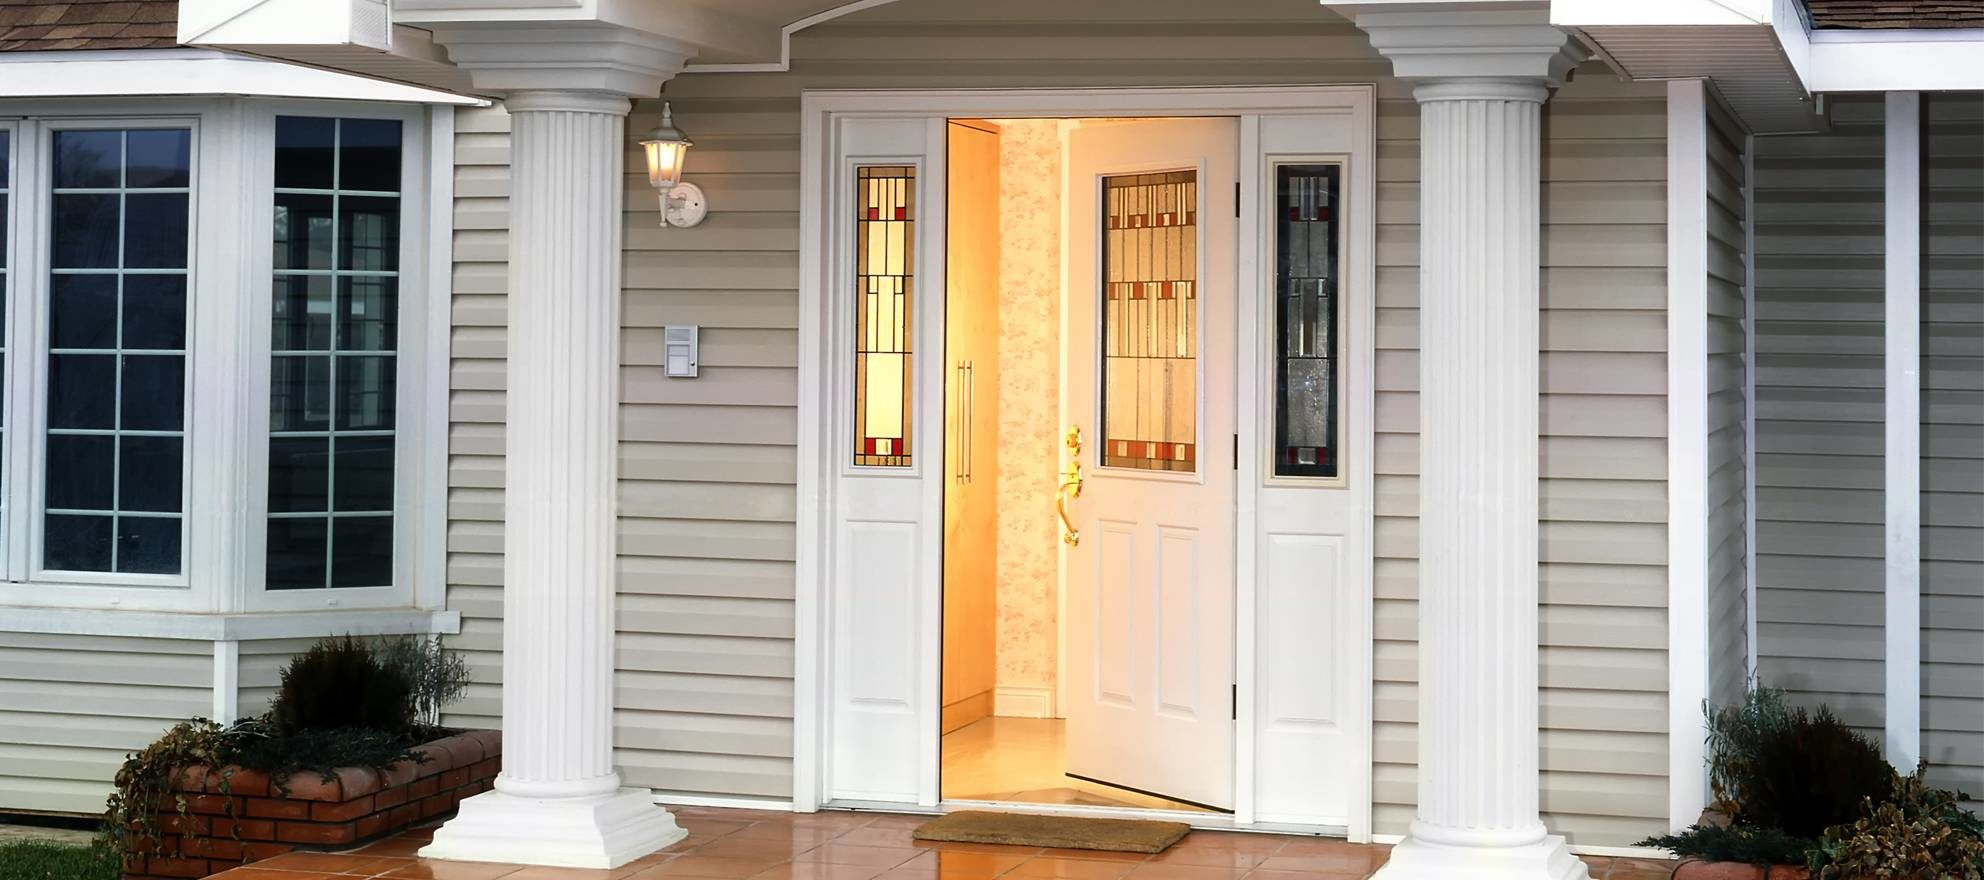 10 steps to a safe open house